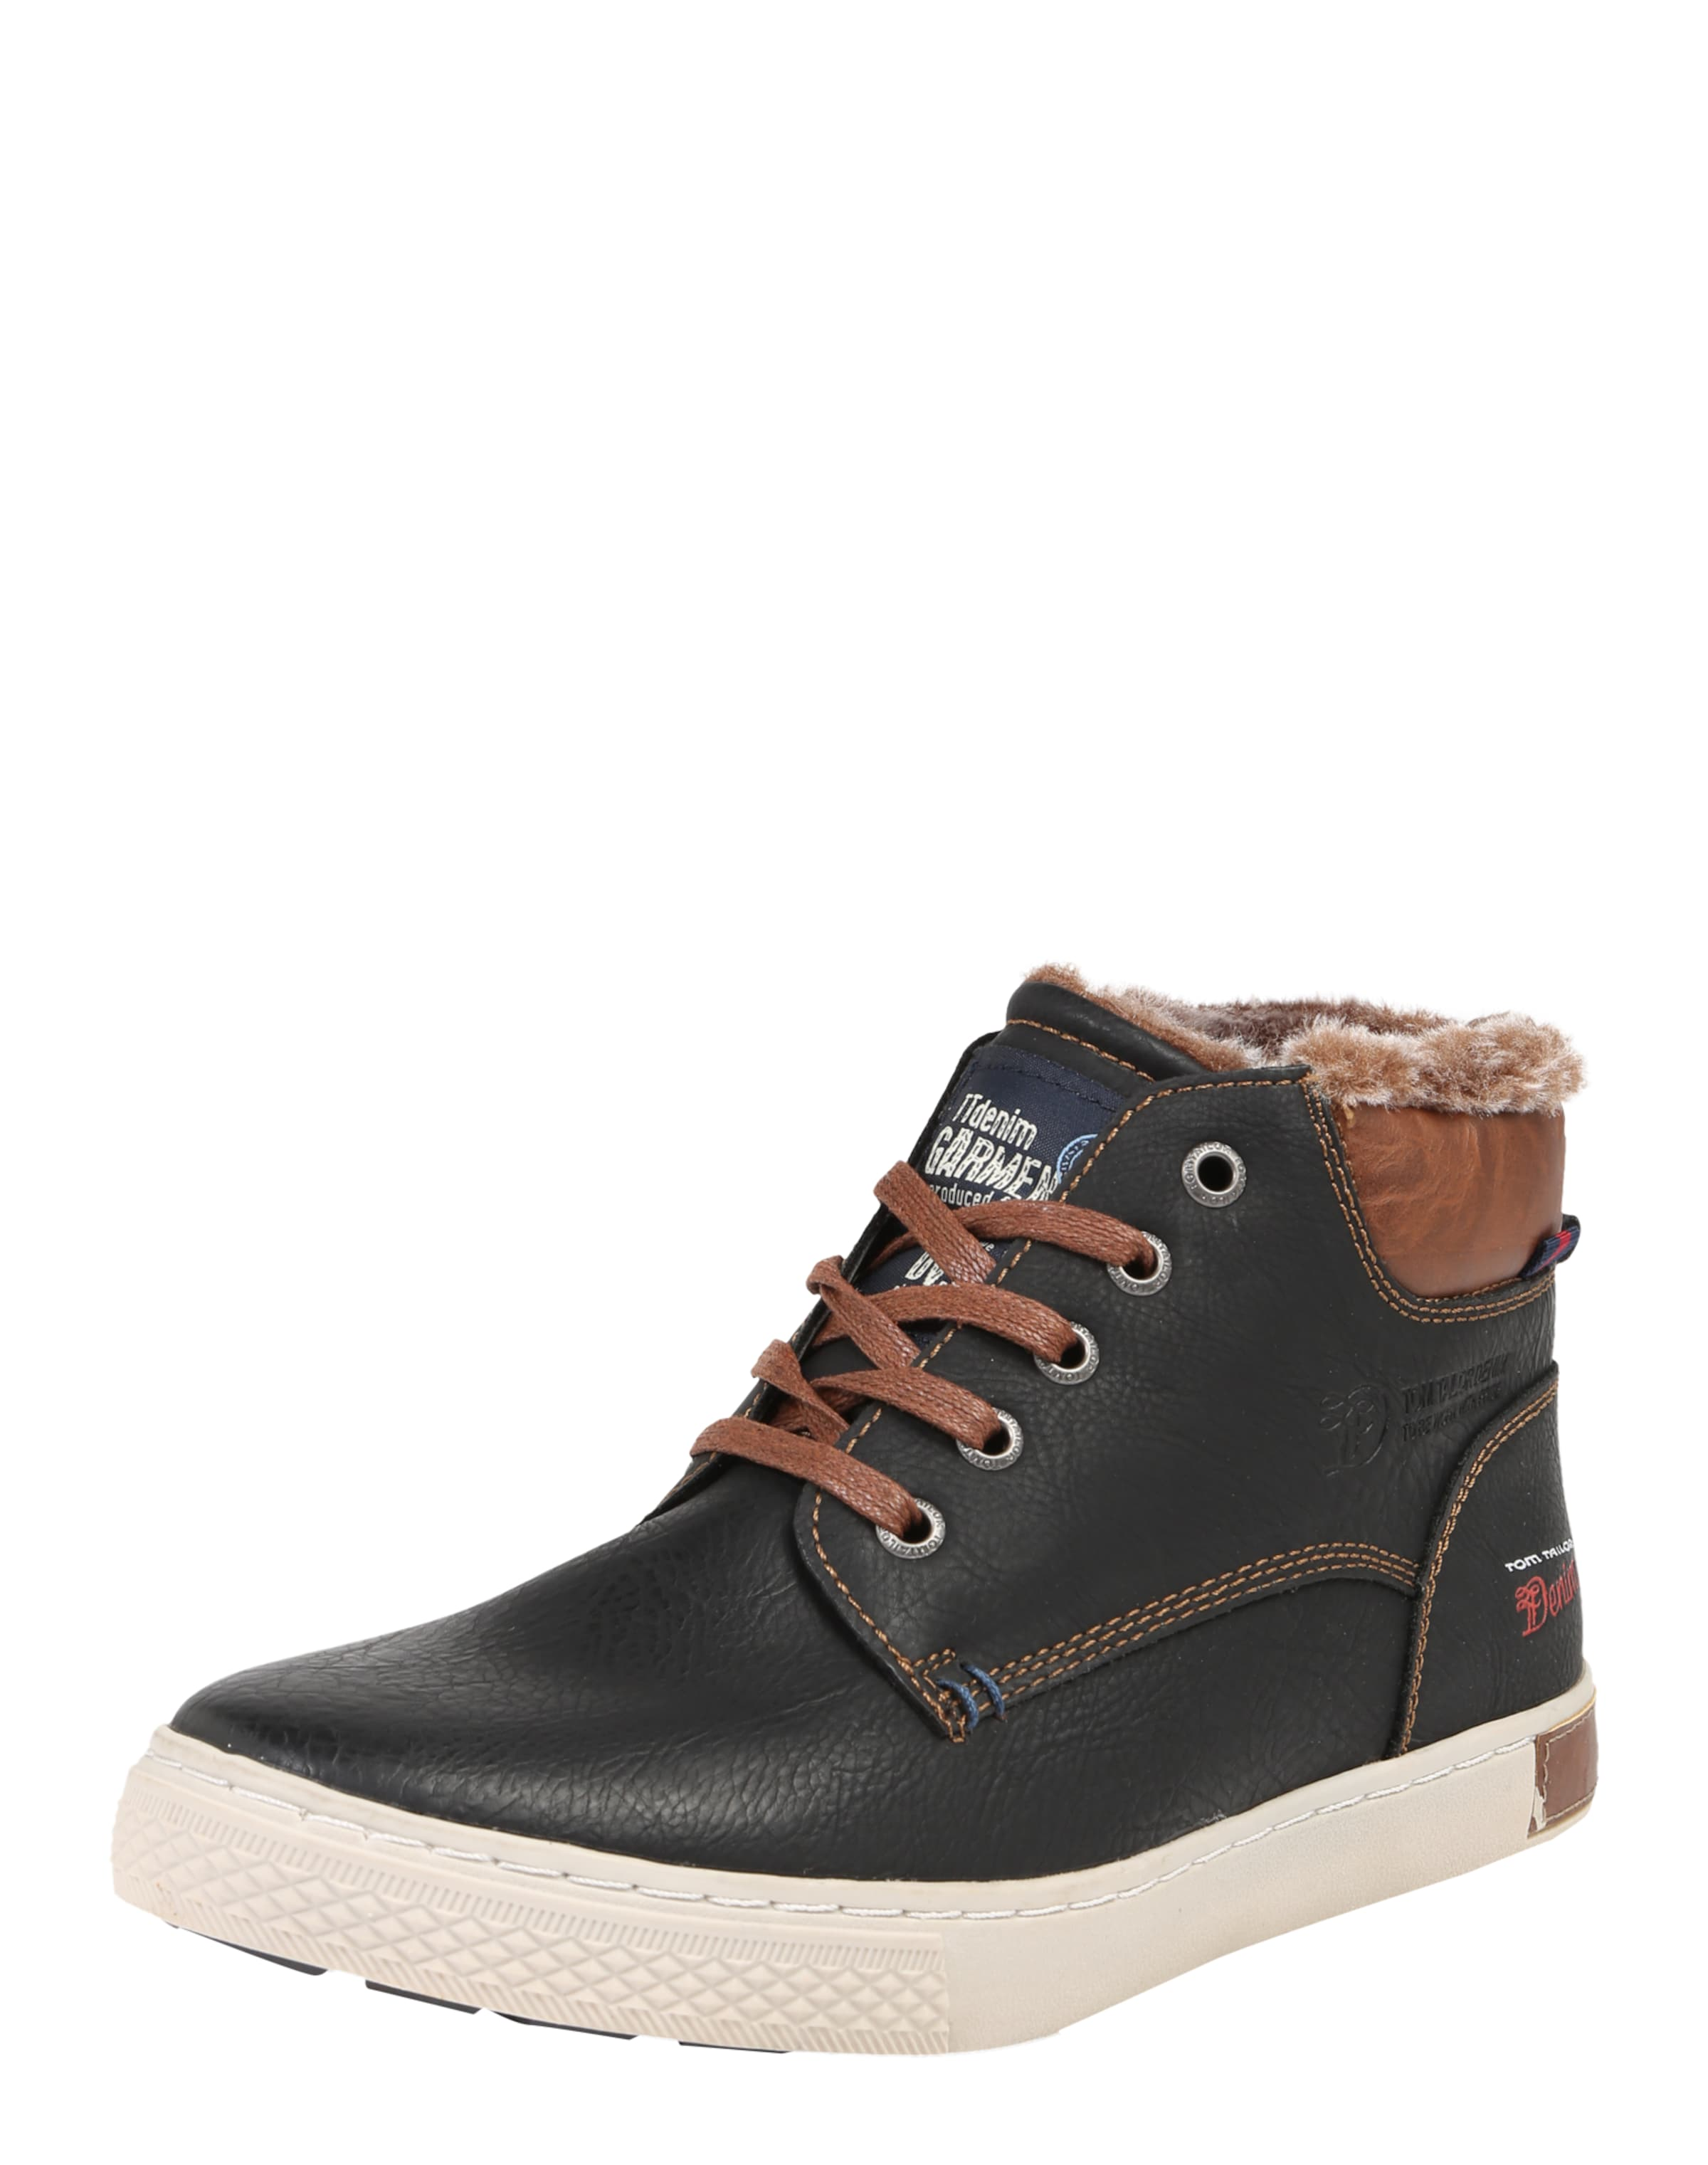 TOM TAILOR Sneaker High mit Webpelzfutter